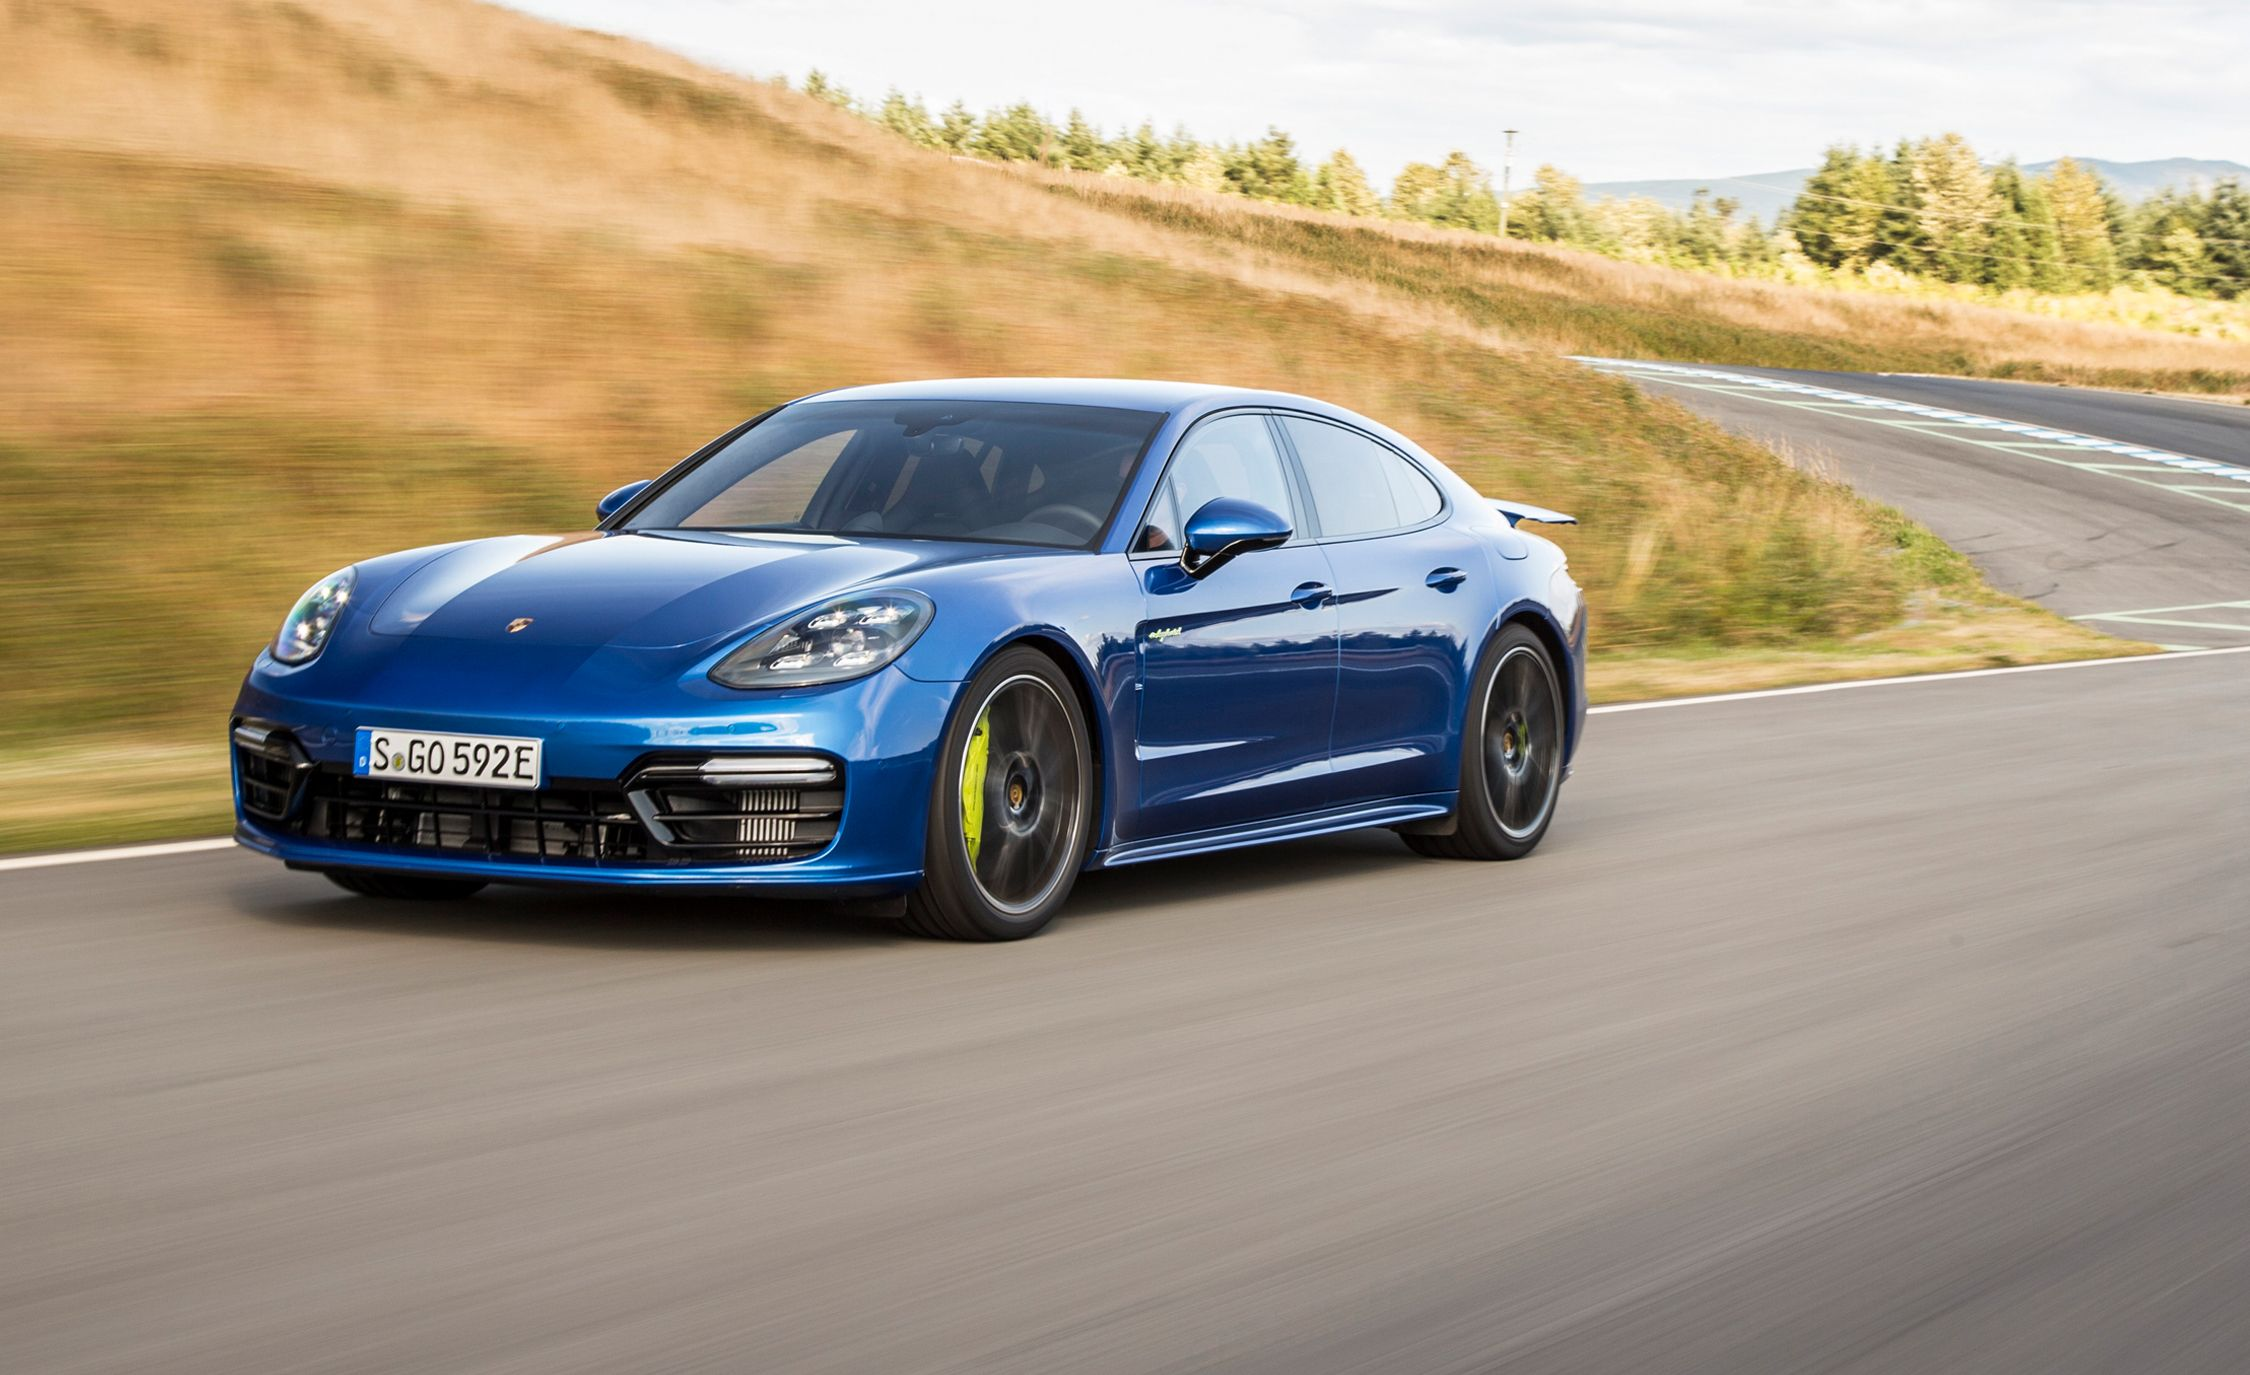 2018 Porsche Panamera Turbo S E Hybrid First Drive Review Car And Driver